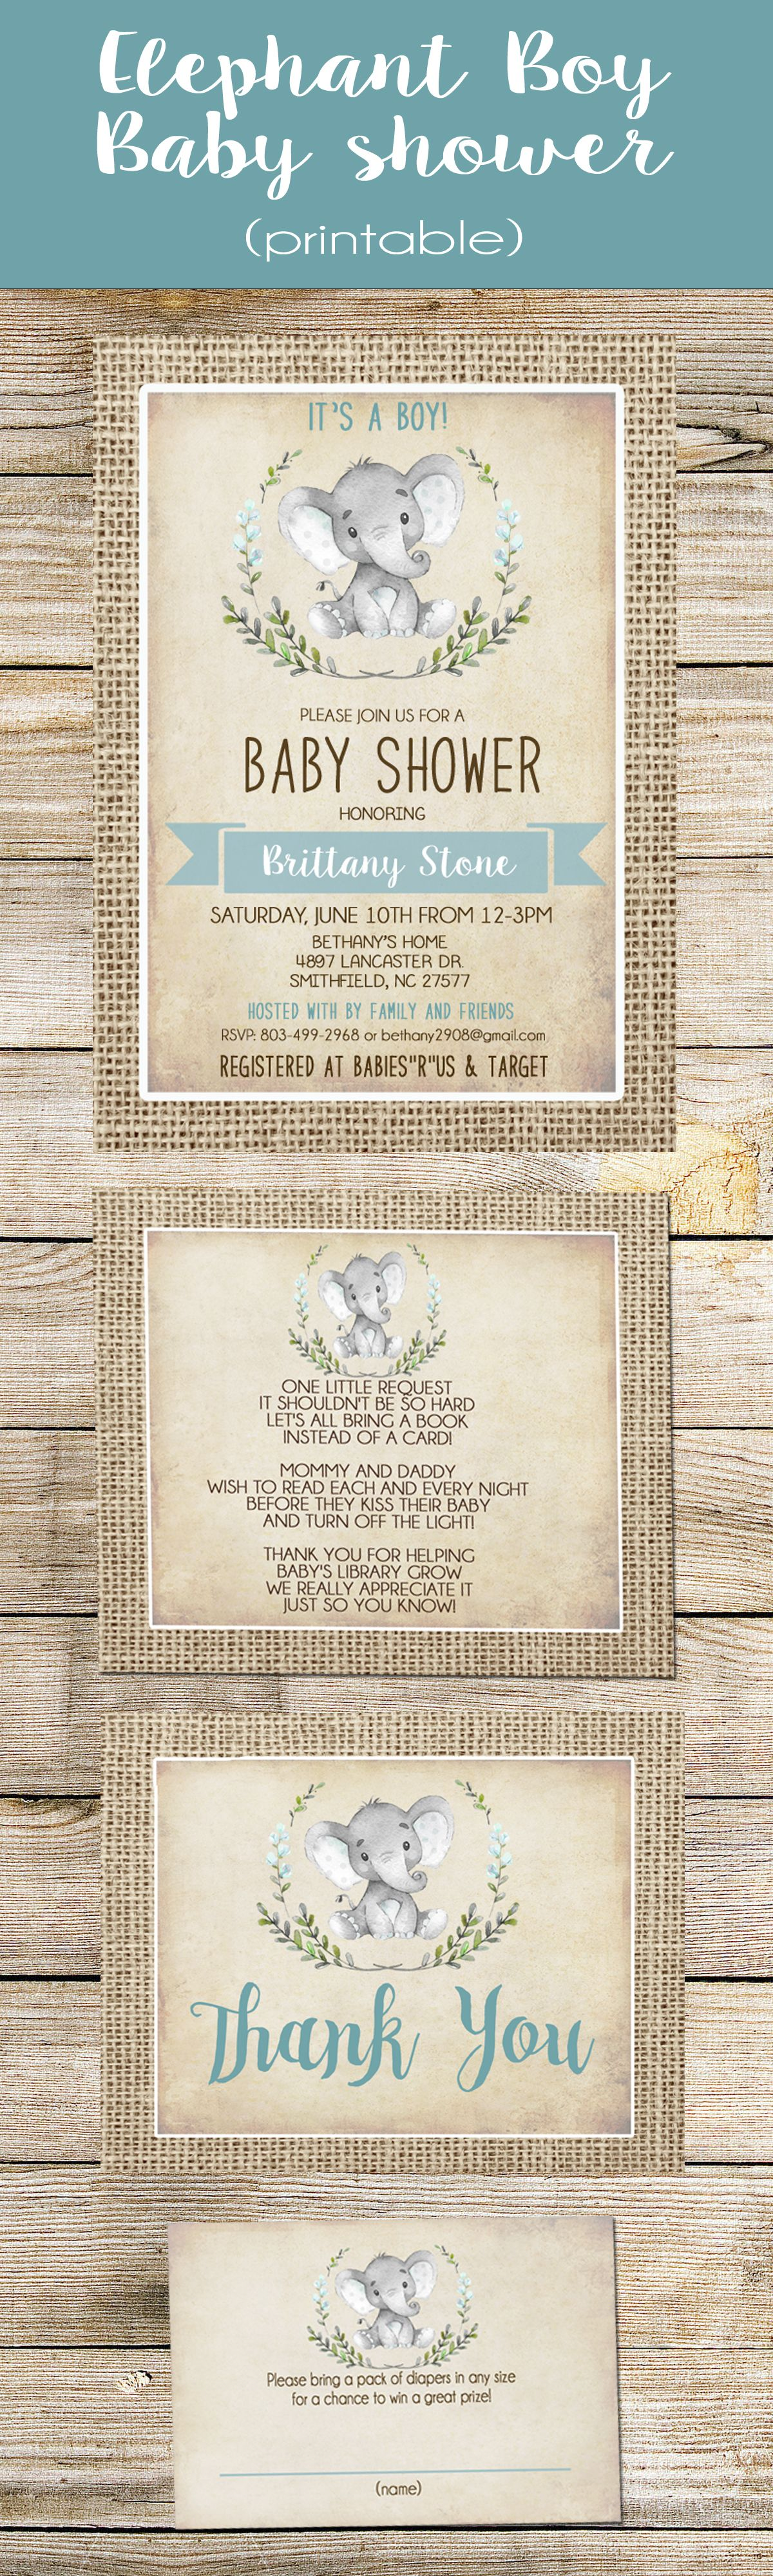 free printable camo baby shower invitations templates%0A Boy Elephant Baby Shower Invitation Boy Burlap Rustic Shower Invitation   Shabby Chic  Blue